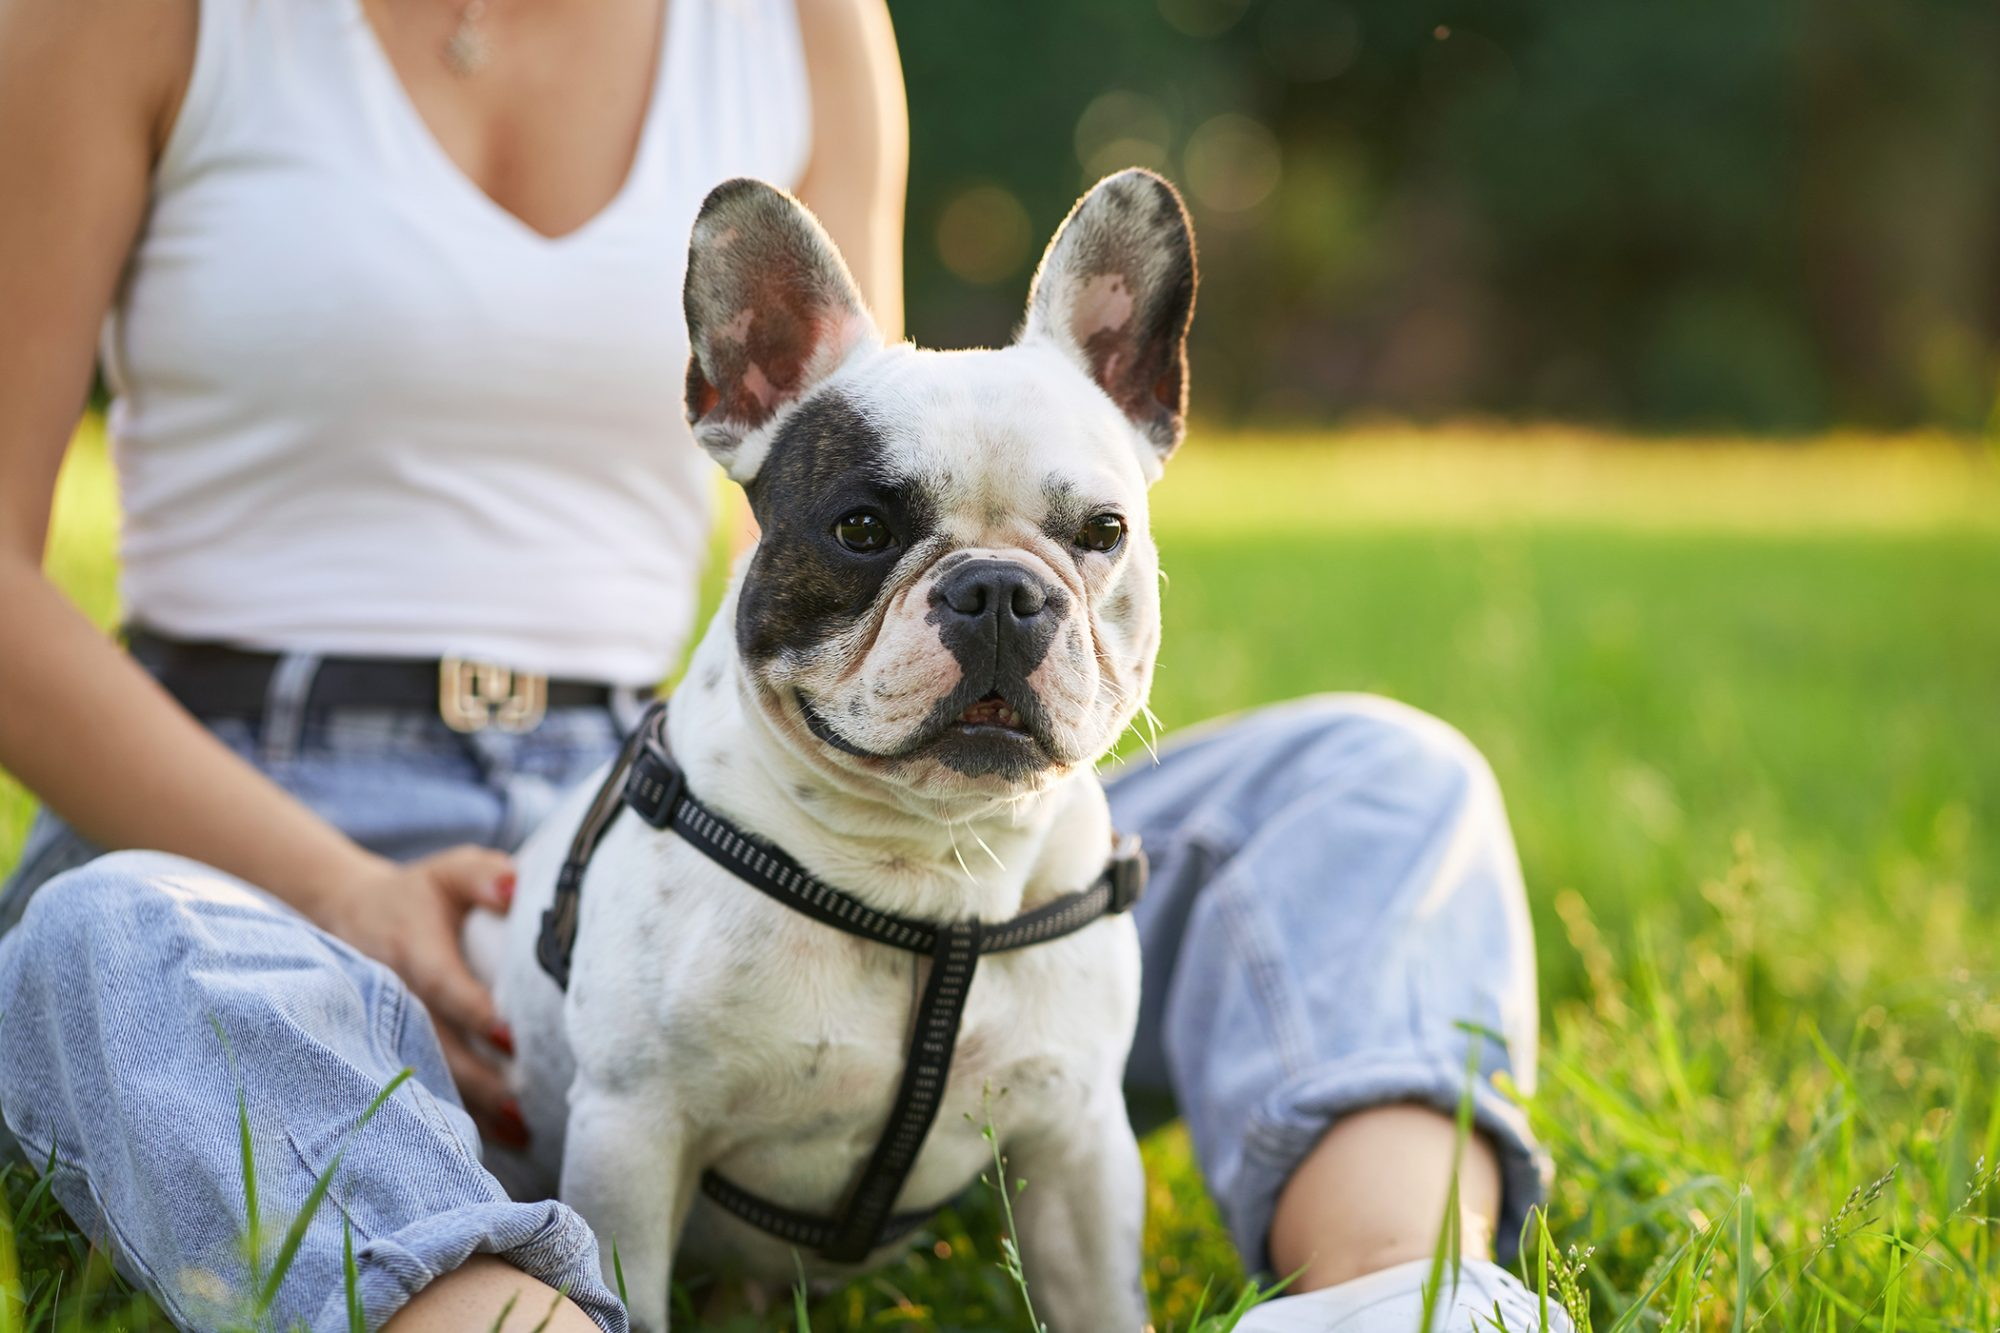 French bulldog wearing a harness sitting in her owner's lap outside in the grass